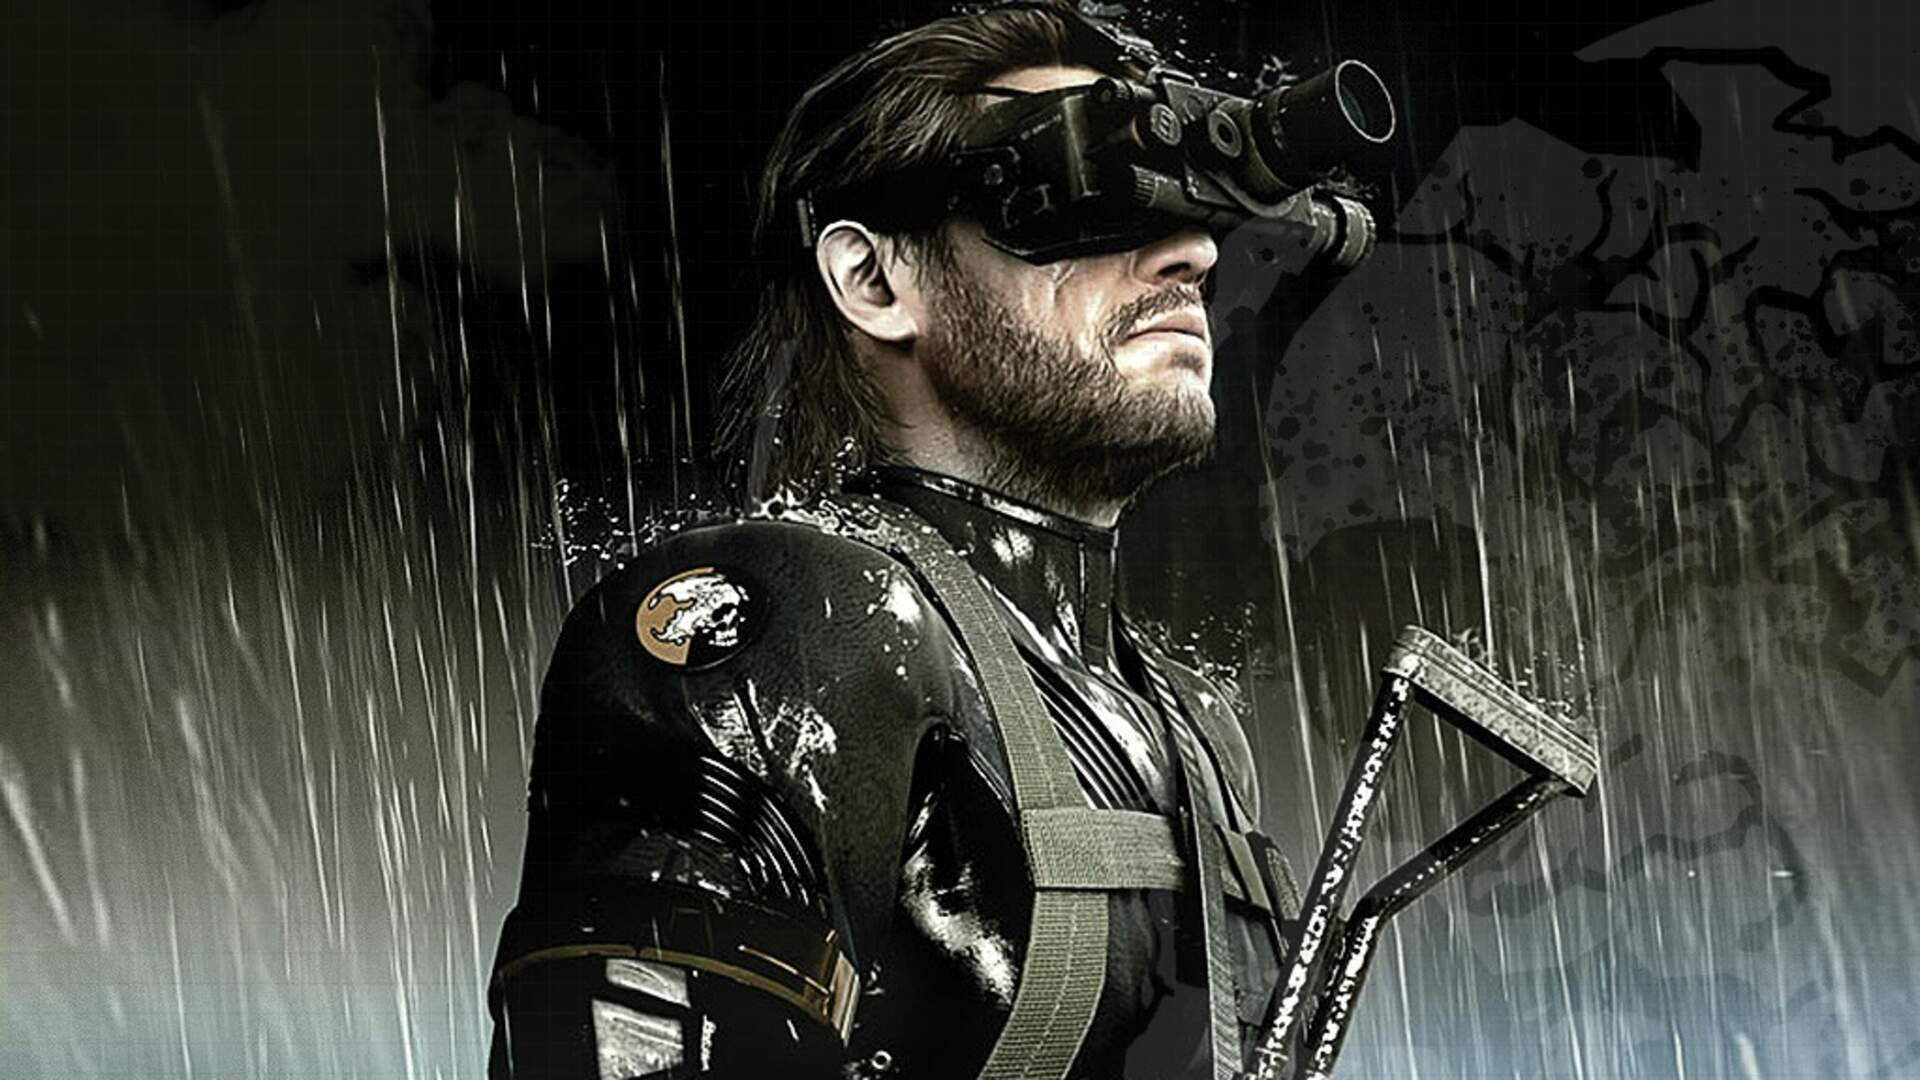 Ground Zeroes Gets a Price Drop, Companion App and Content for Phantom Pain